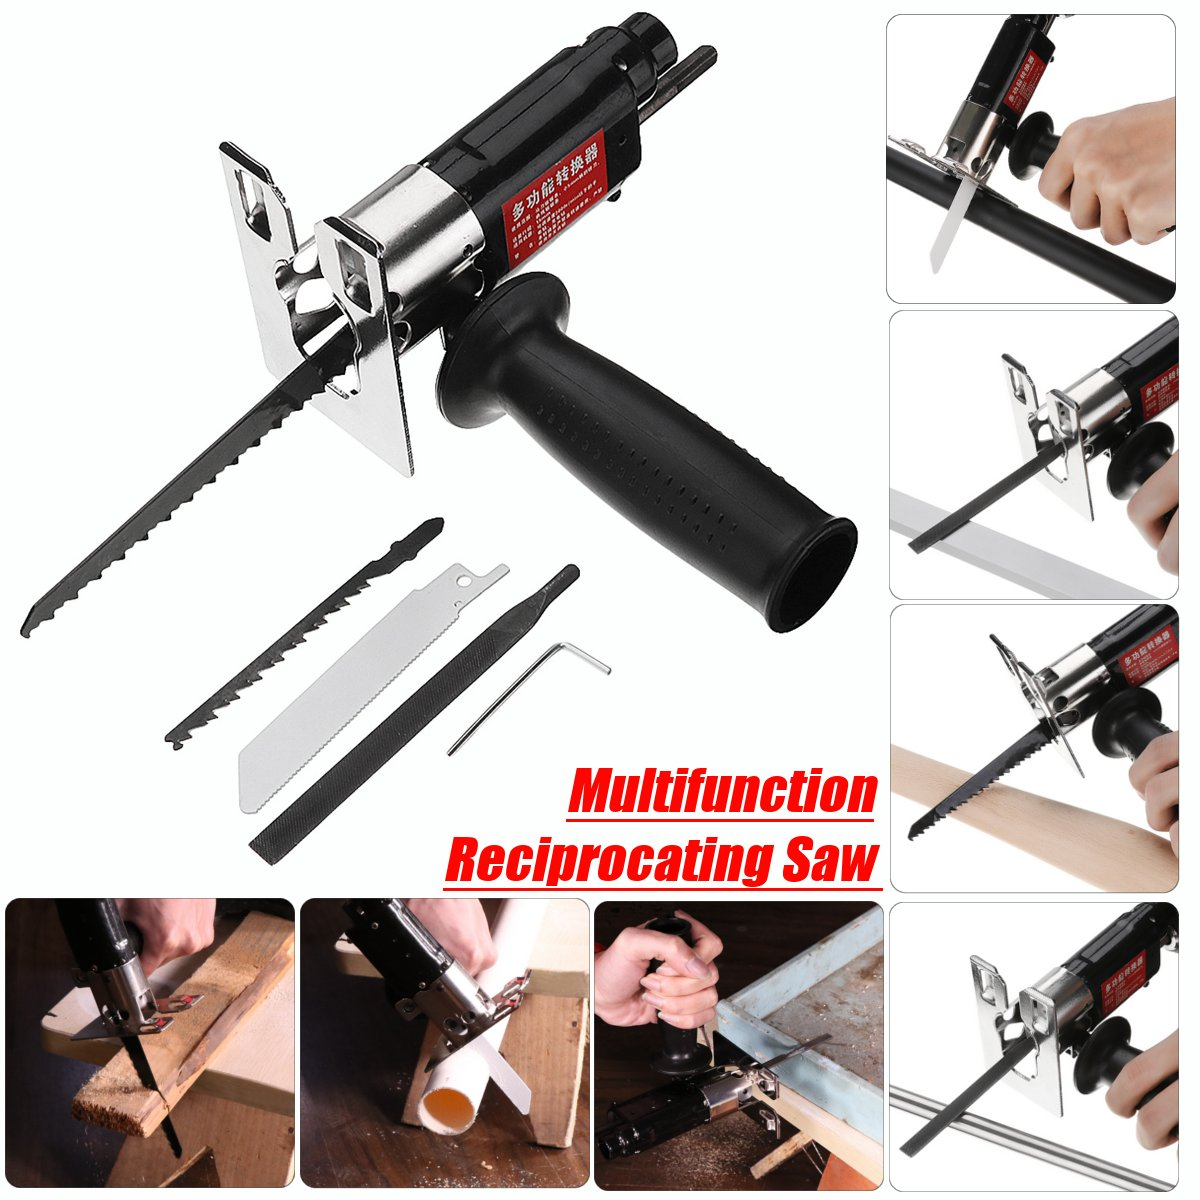 Multifunction Reciprocating Saw Attachment Change Electric Drill Into Reciprocat Saw Jig for the wood metal cutting metal file